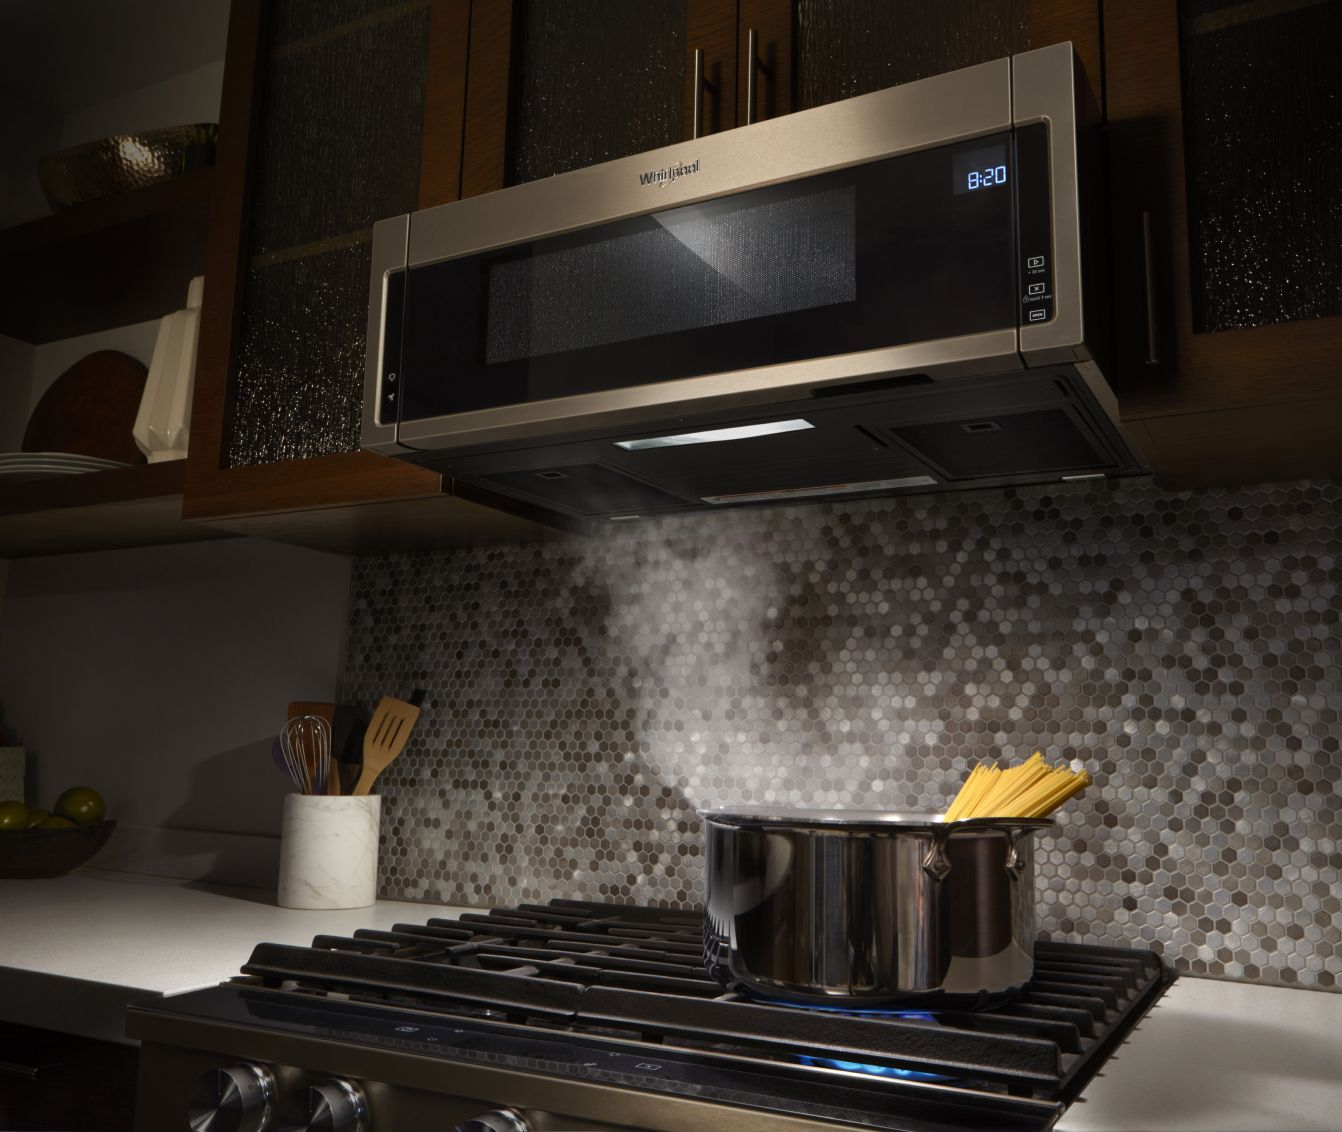 Compare To Find The Best Range Hood For Your Kitchen